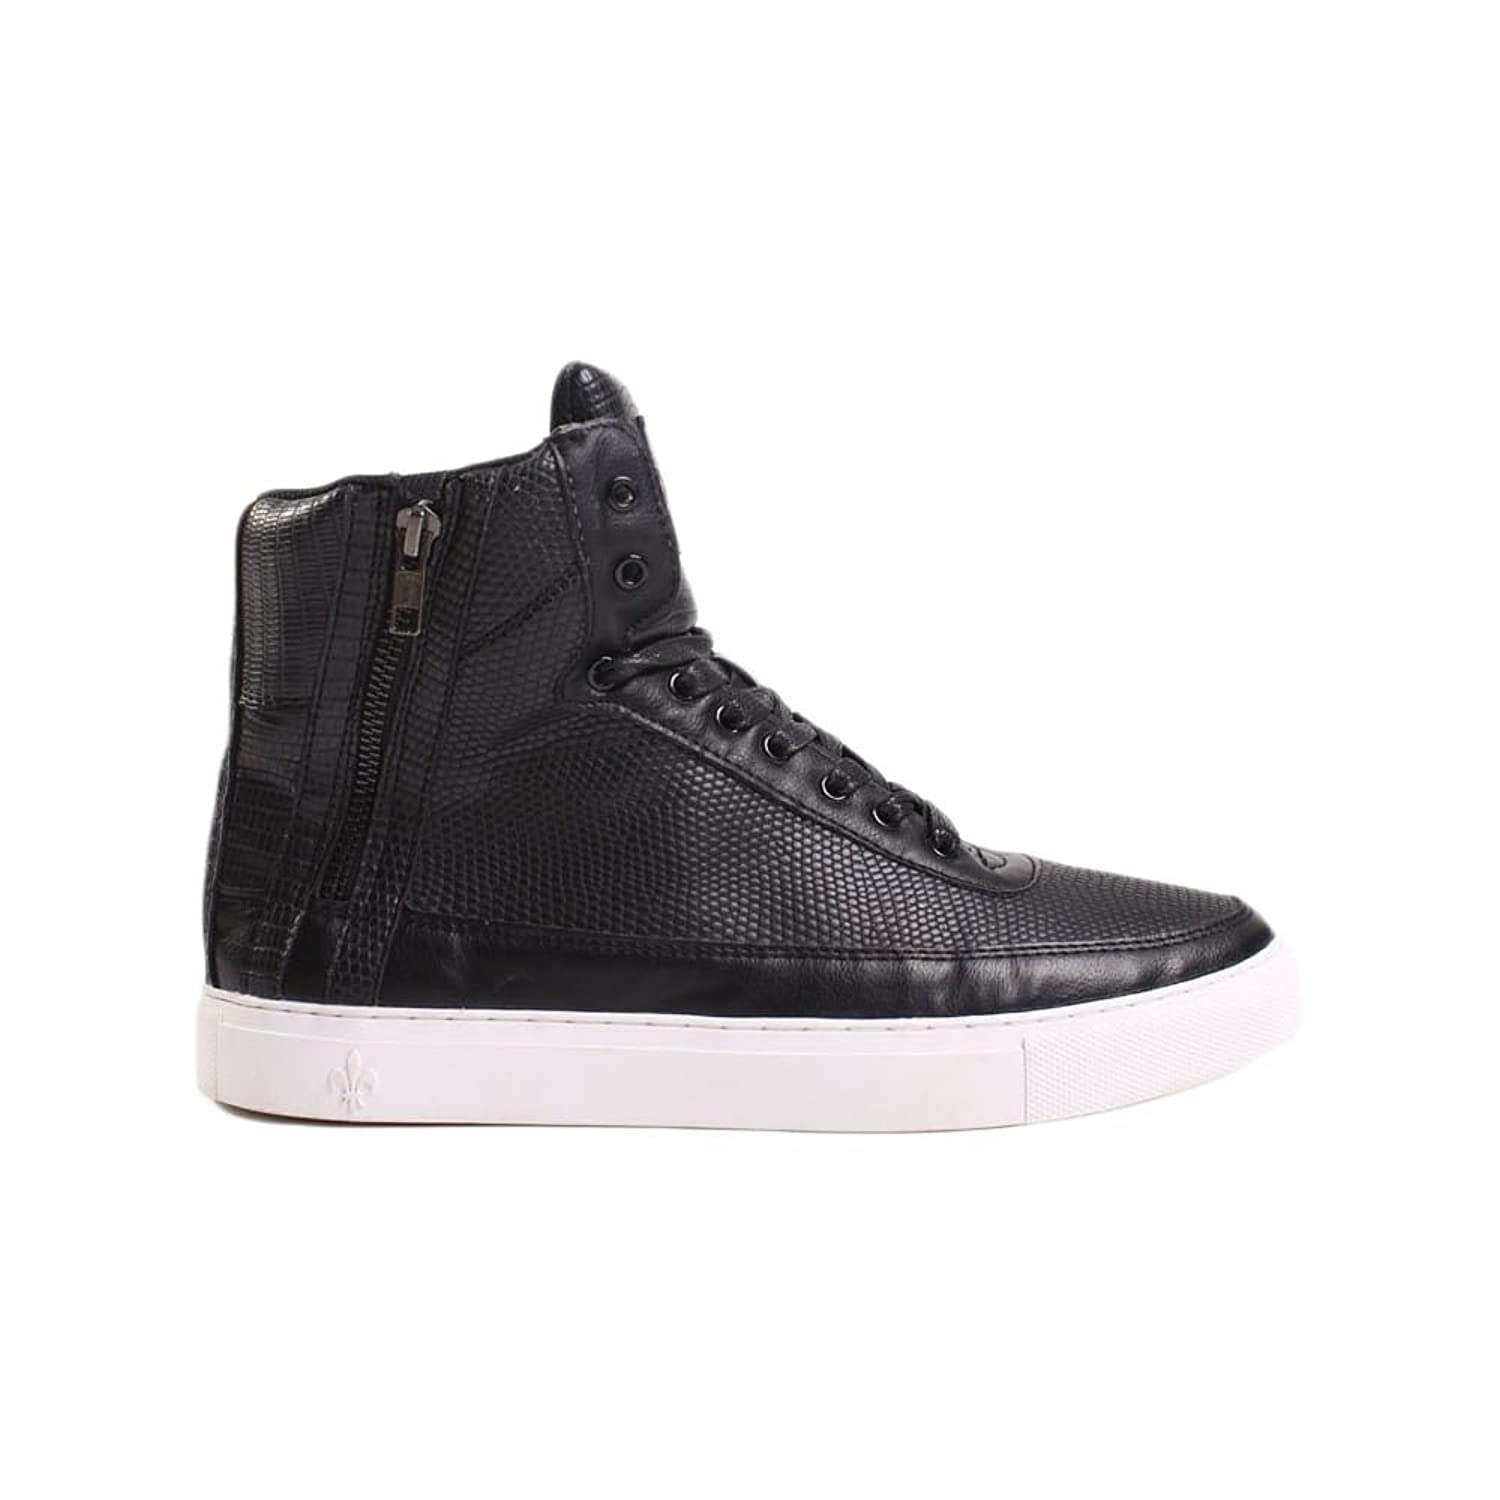 Criminal Damage Catana Sneakers Schwarz High Top Trainer Schwarz